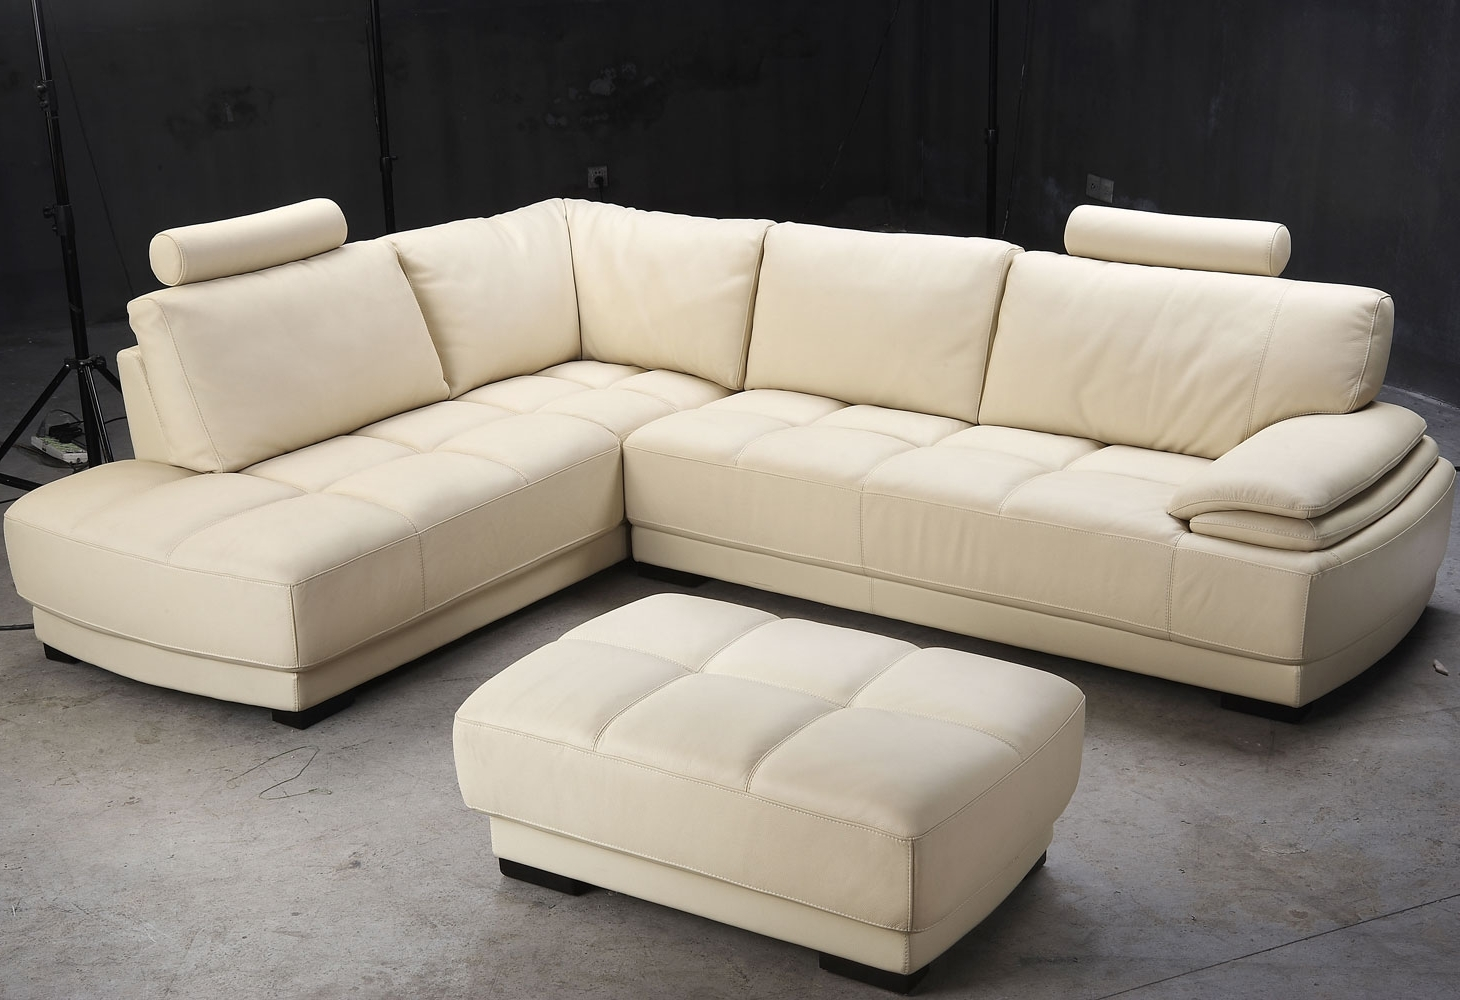 Leather L Shaped Sectional Sofas With Most Current White Ivory Leather L Shaped Sectional Sofa With Chaise Of (View 8 of 20)